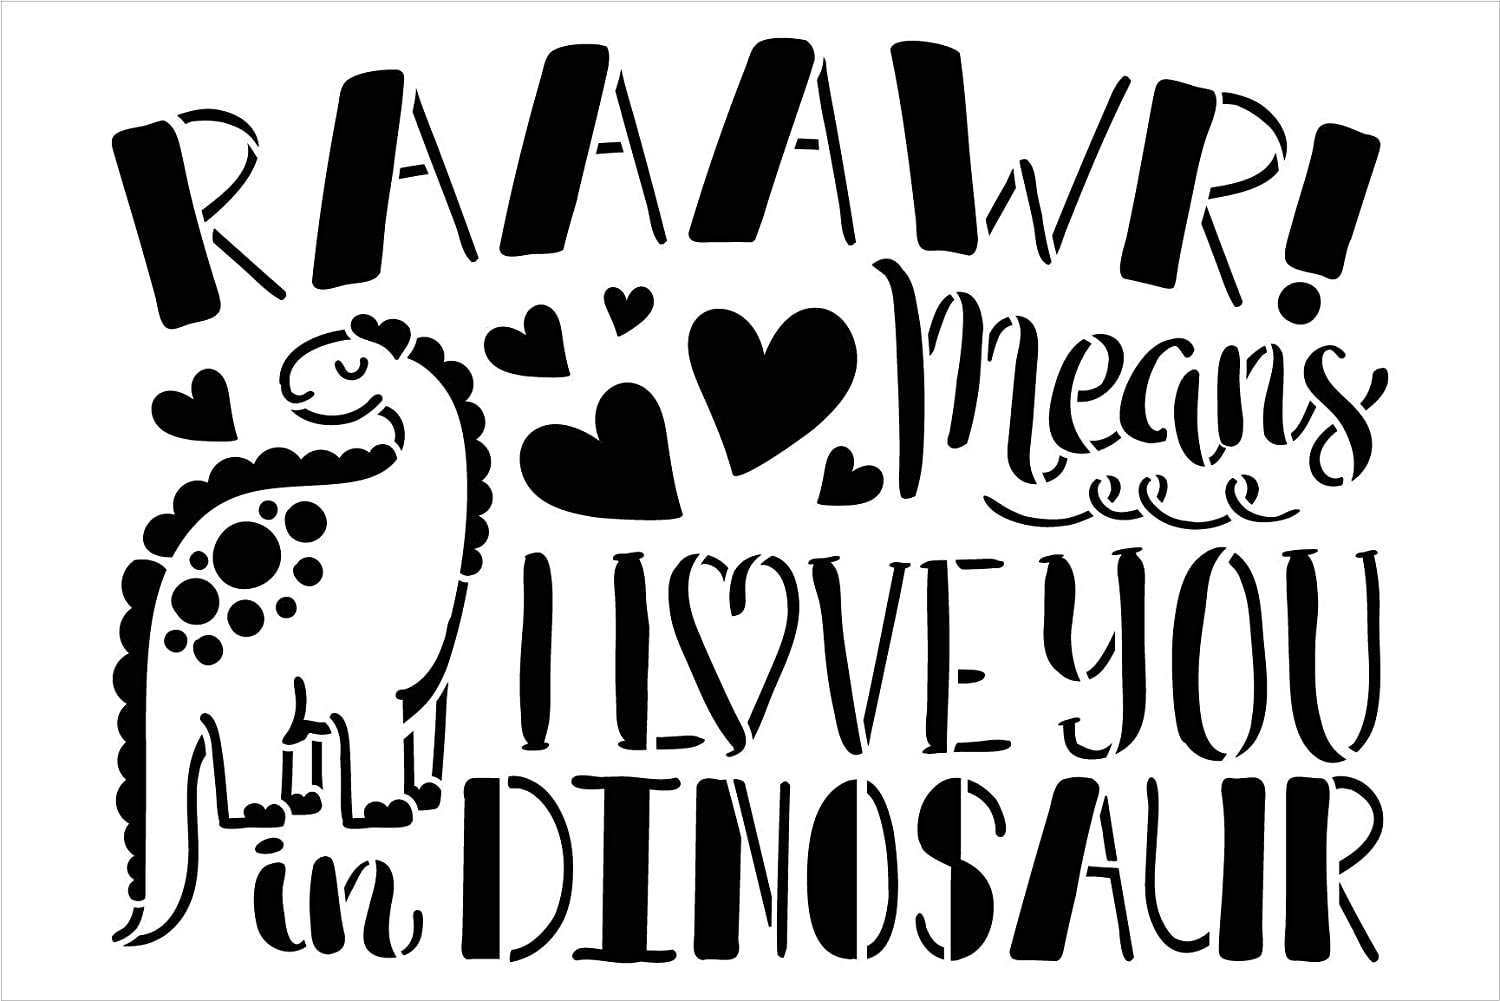 Rawr - I Love You in Dinosaur Stencil by StudioR12 | DIY Child Family Heart Home Decor | Craft & Paint Wood Sign Reusable Mylar Template | Funny Quote Nursery Gift Select Size